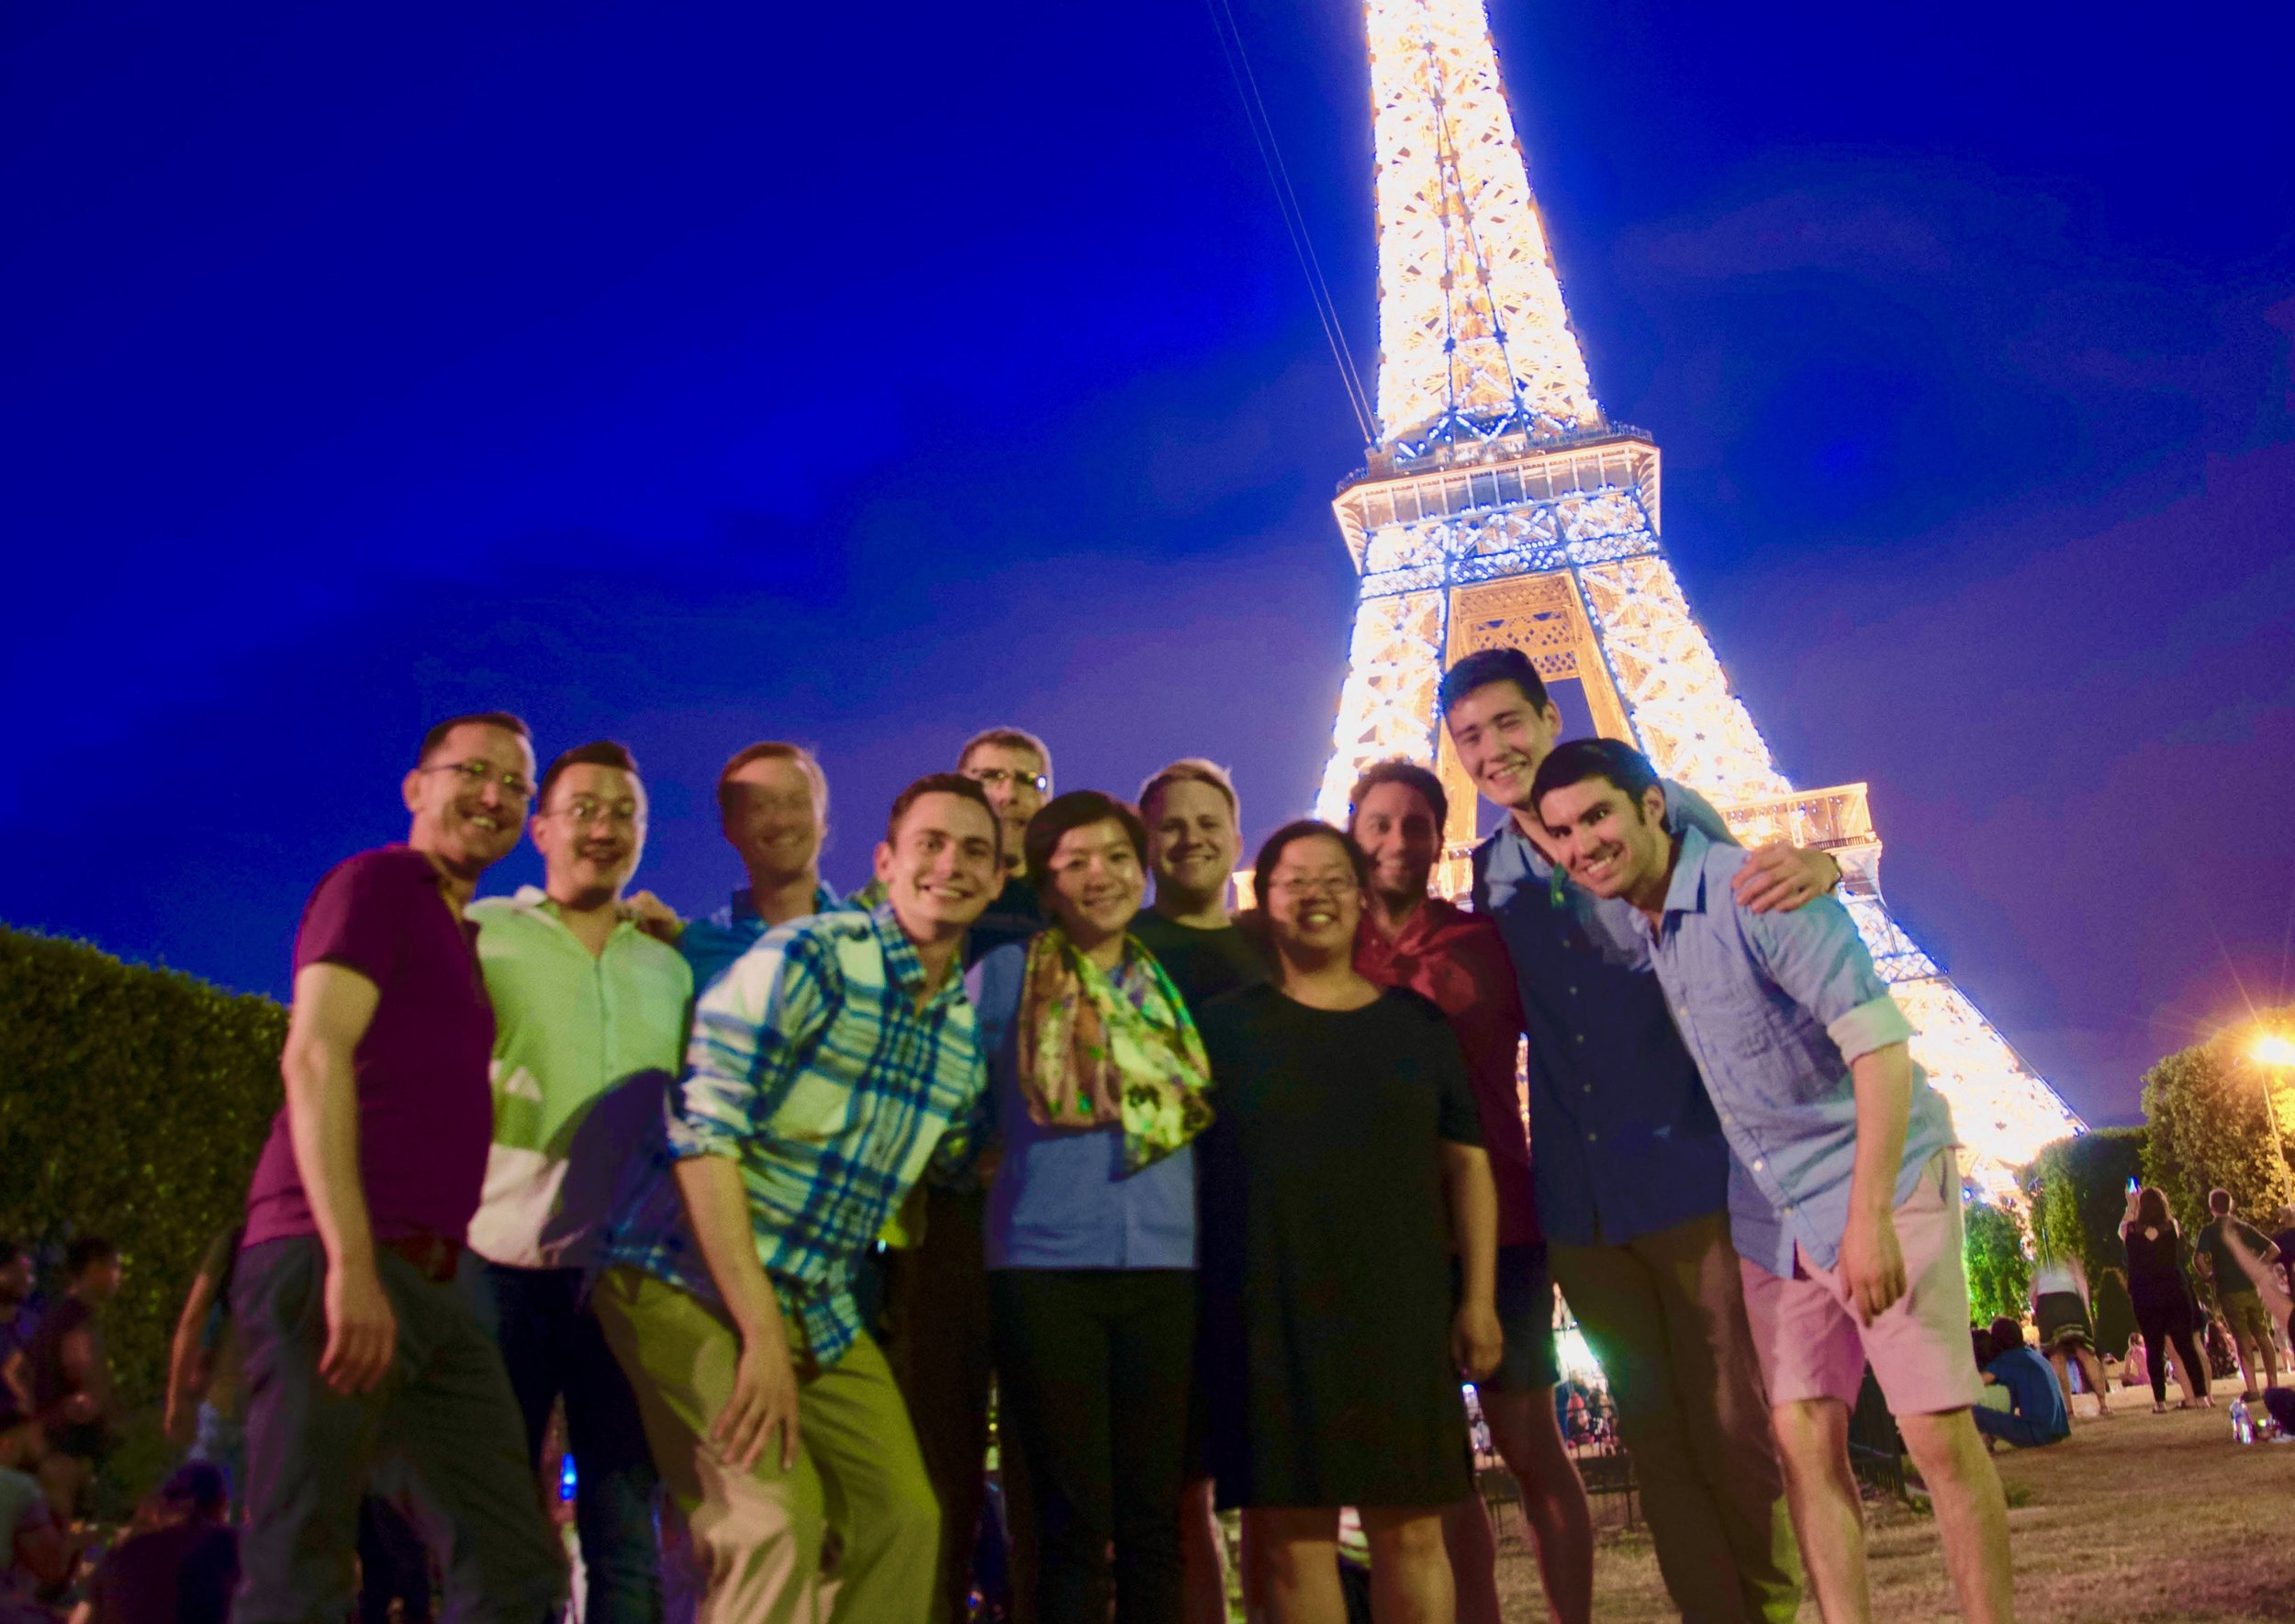 The Boston Organ Studio enjoying a night at the Eiffel Tower!